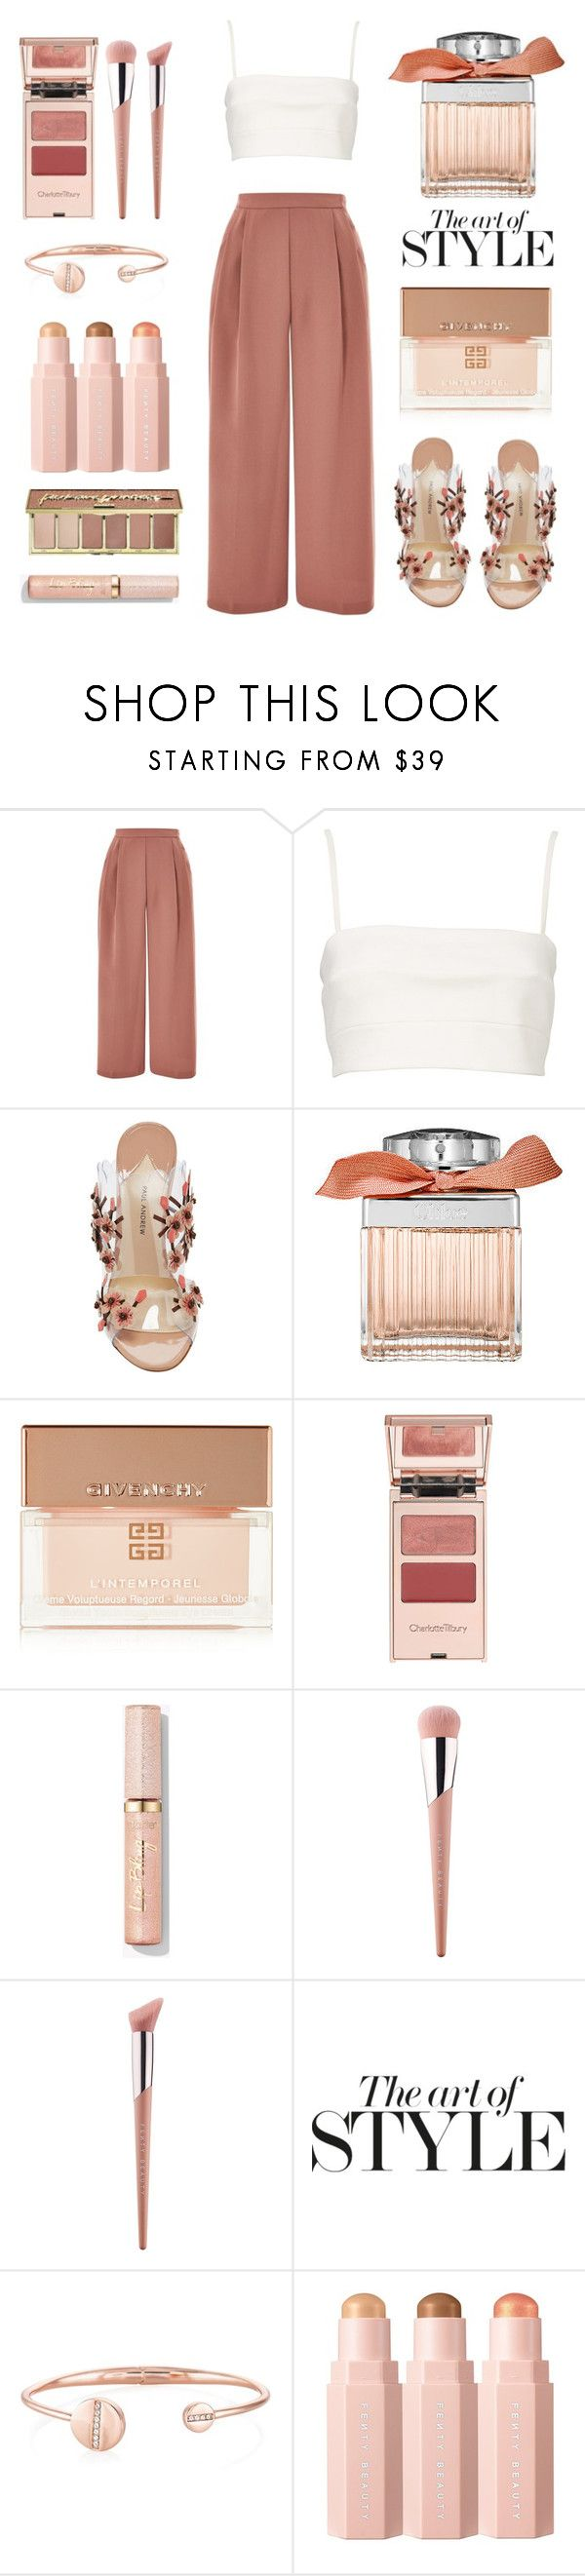 """Untitled #688"" by tenindvr ❤ liked on Polyvore featuring Topshop, Witchery, Paul Andrew, Chloé, Givenchy, Charlotte Tilbury, Puma and tarte"